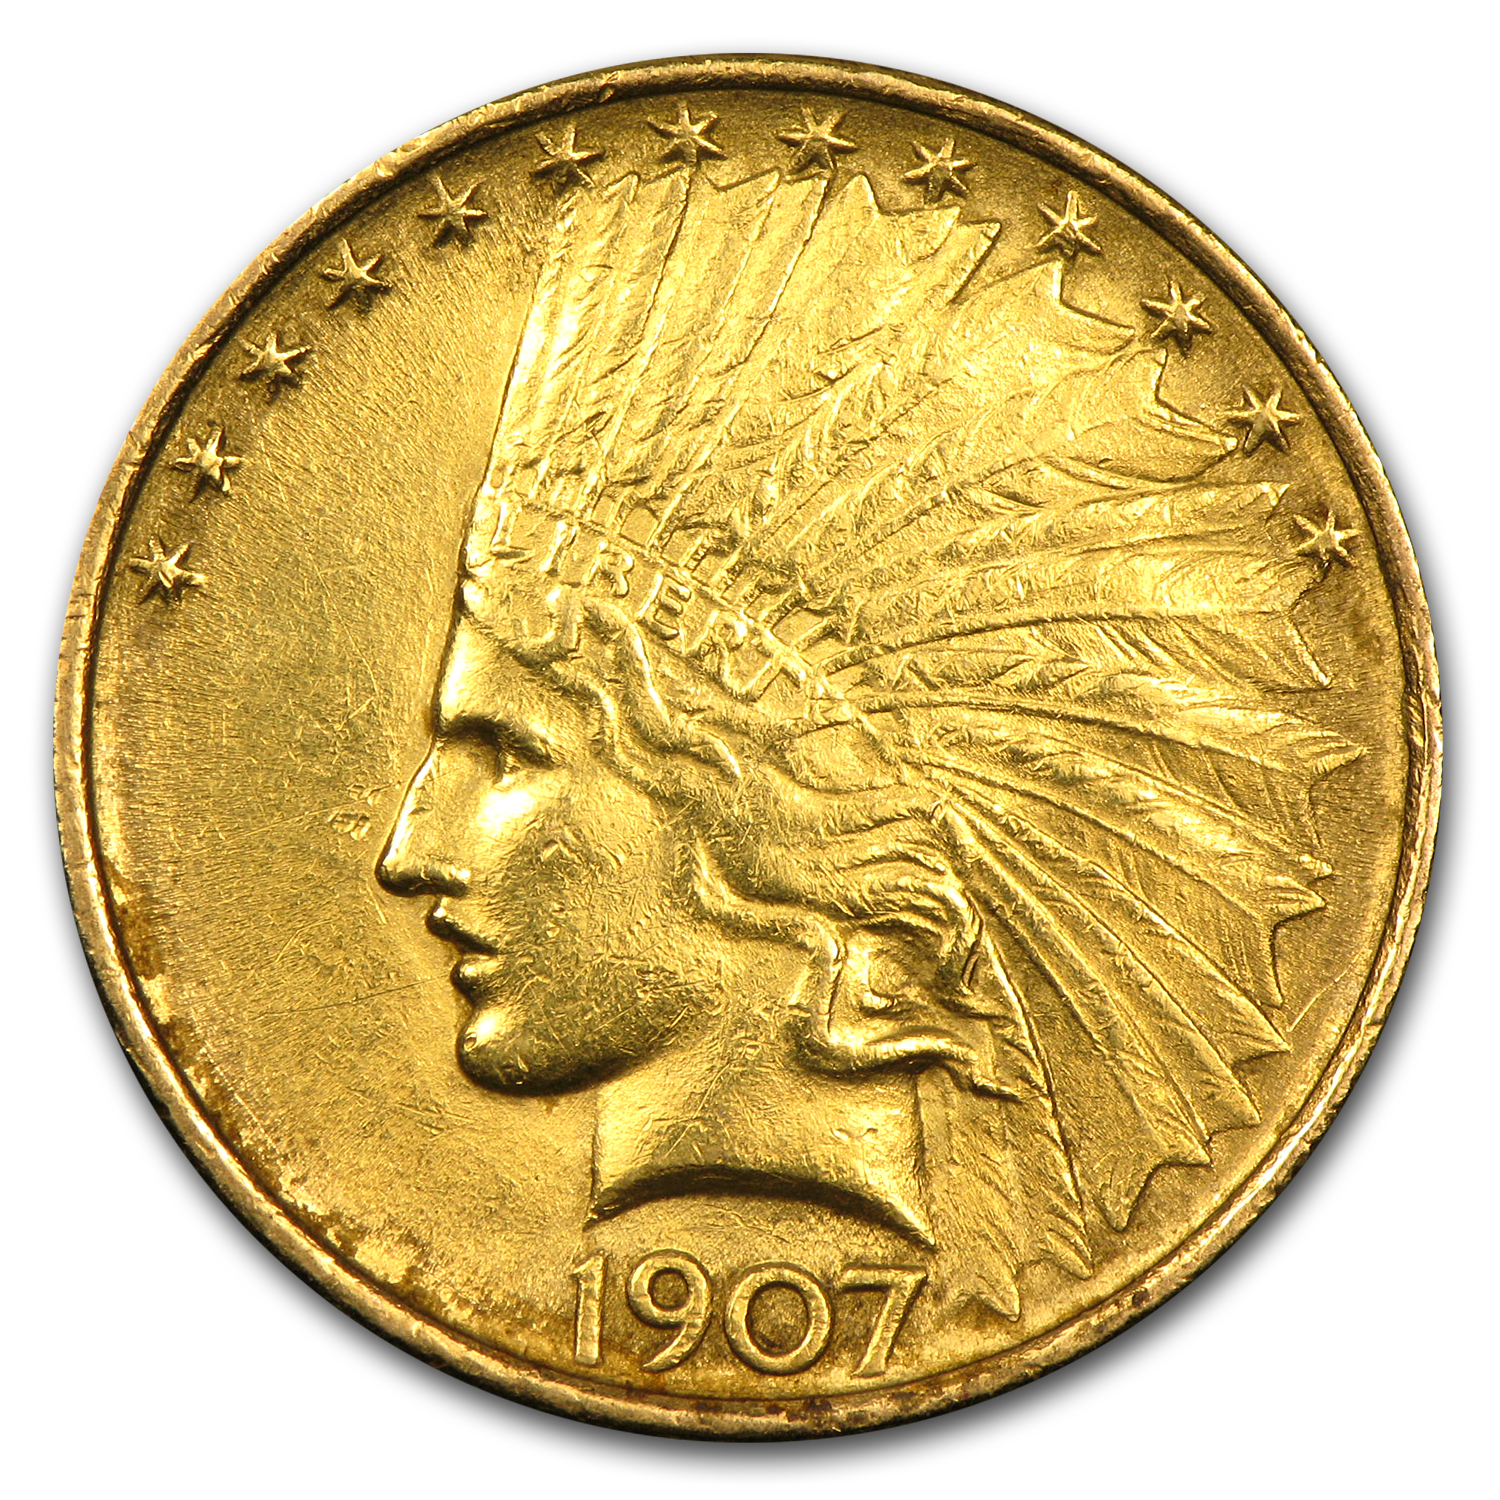 1907 $10 Indian Gold Eagle (Cleaned, First Year of Issue)